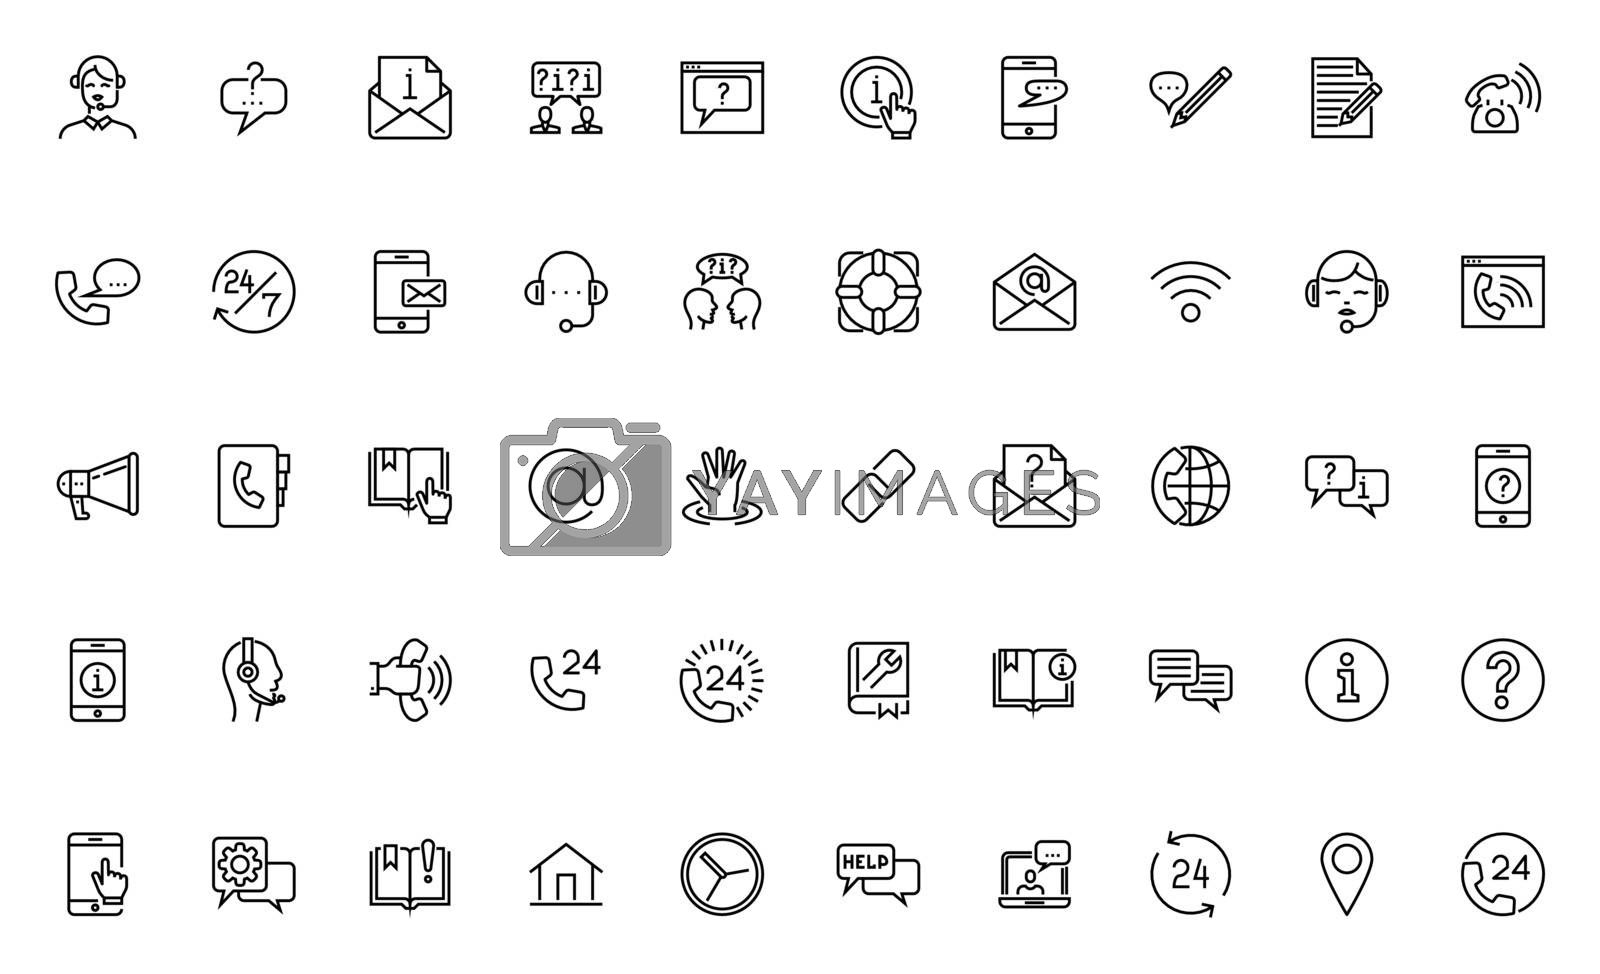 Simple Set of Help, Support and Contact Us Related Vector Line Icons. Contains such Icons as Phone Assistant, Online Help, Support Service, Video Chat. Editable Stroke. 64x64 Pixel Perfect.